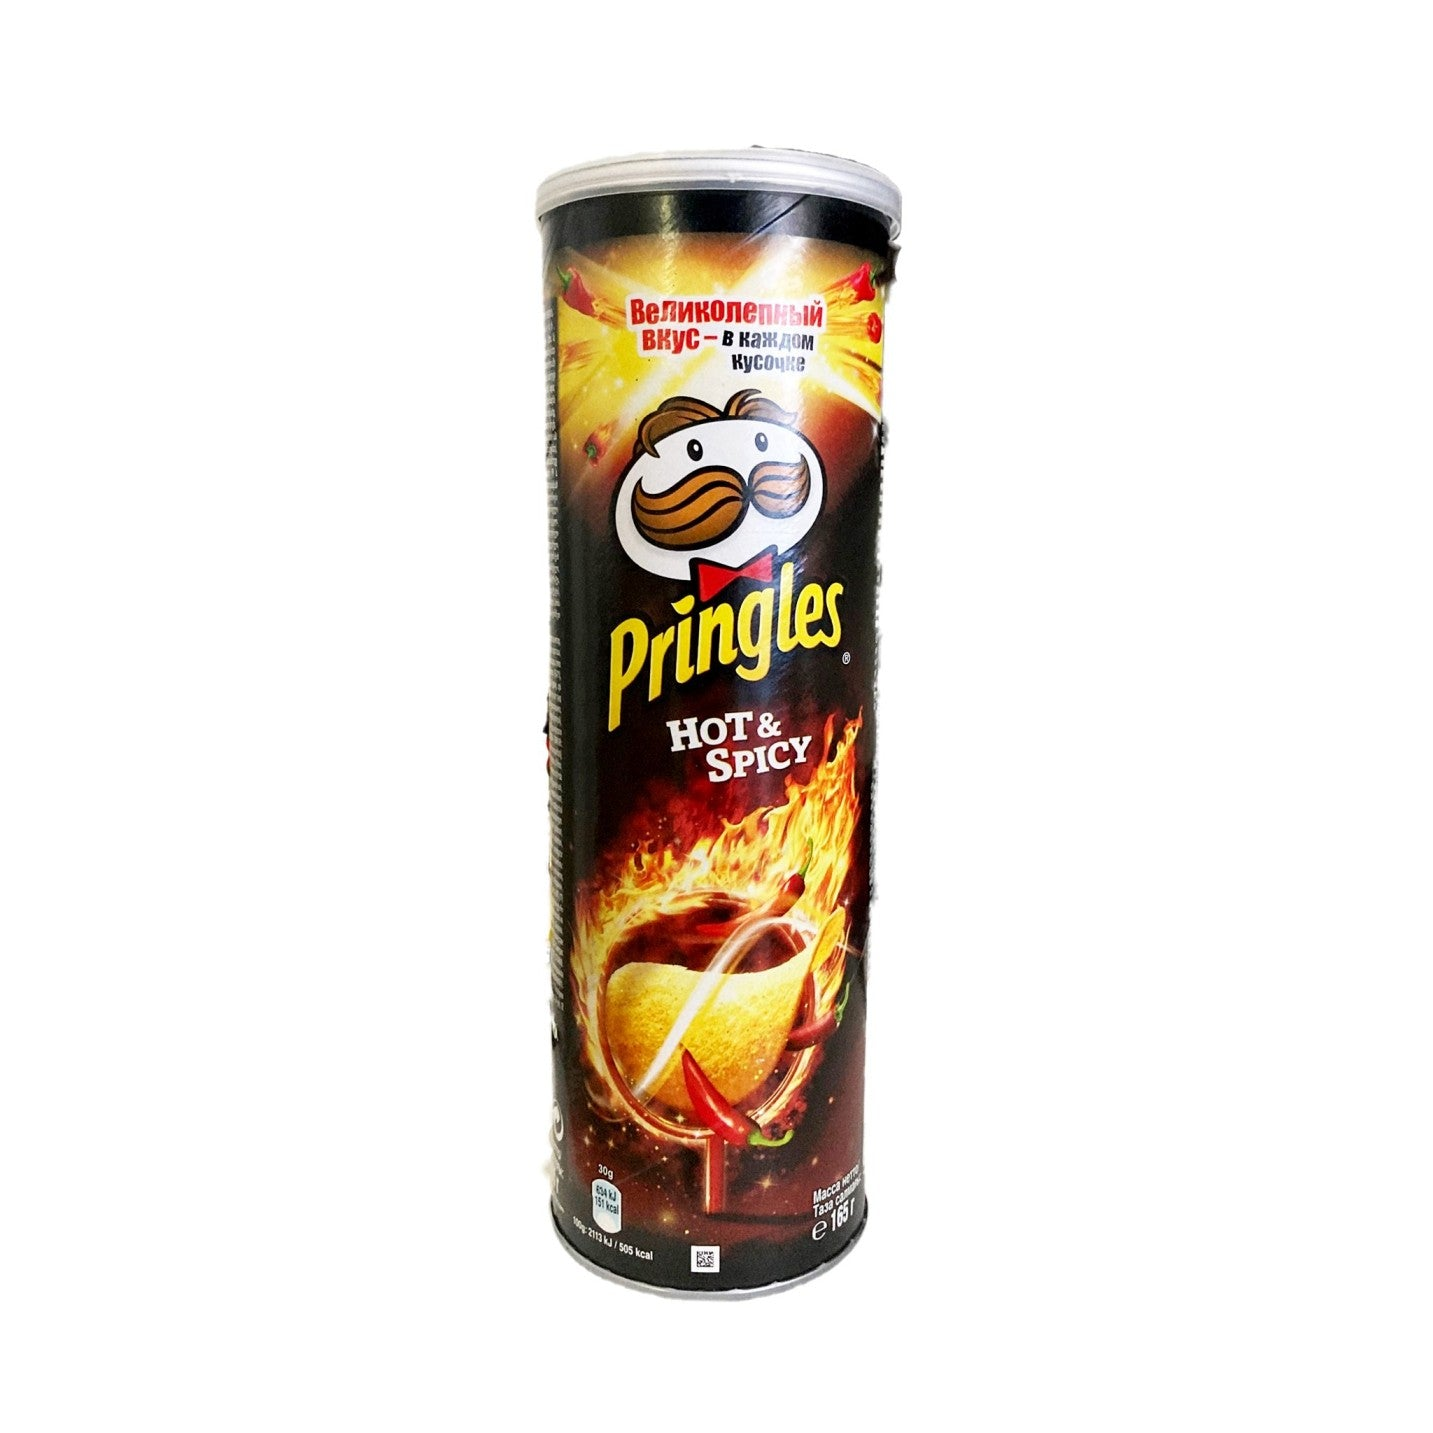 Pringles Hot and Spicy פרינגלס חריף